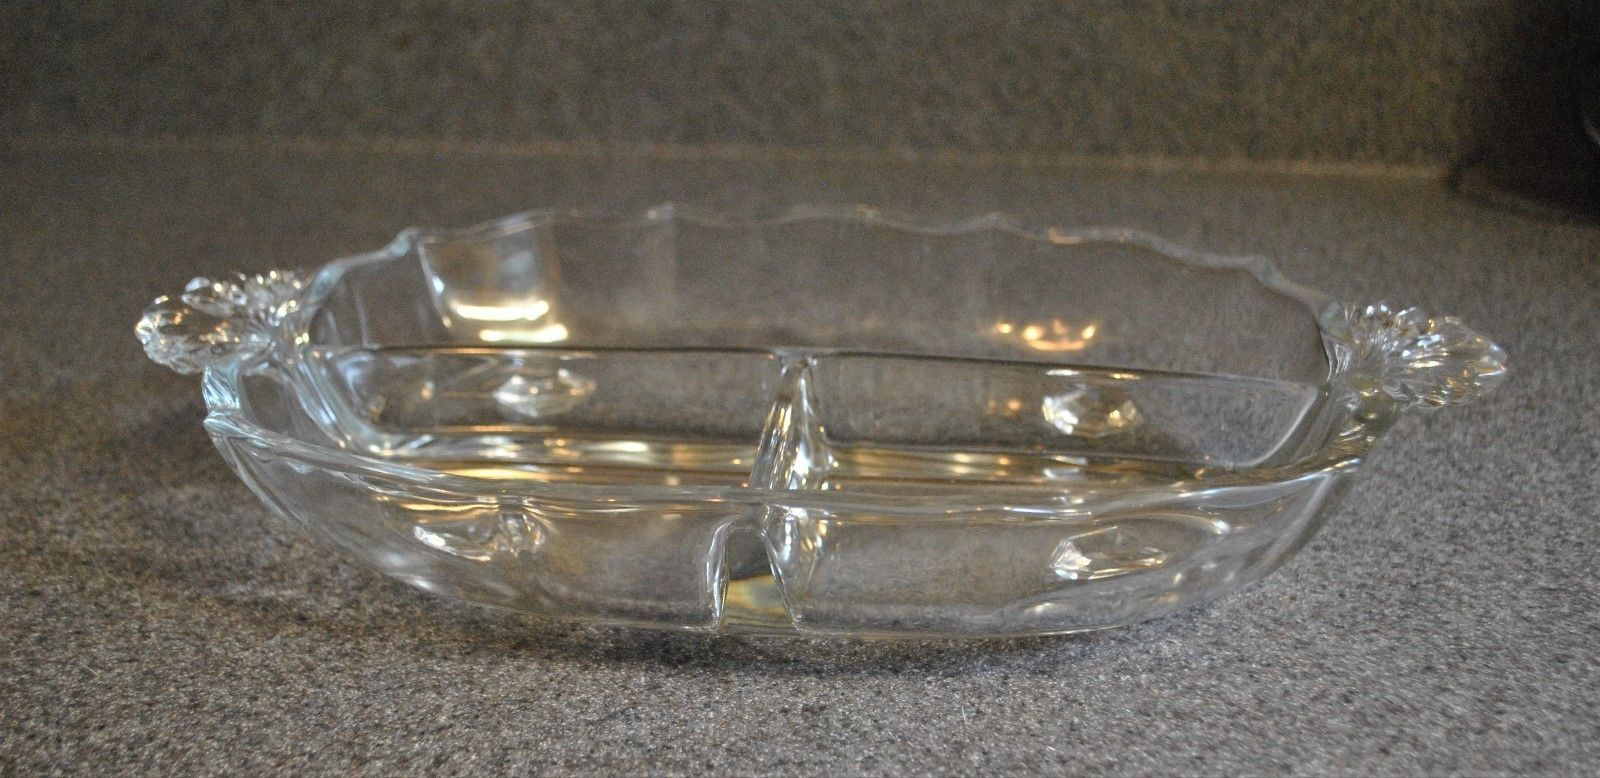 3 Section Handled Relish Dish in Baroque-Clear by Fostoria